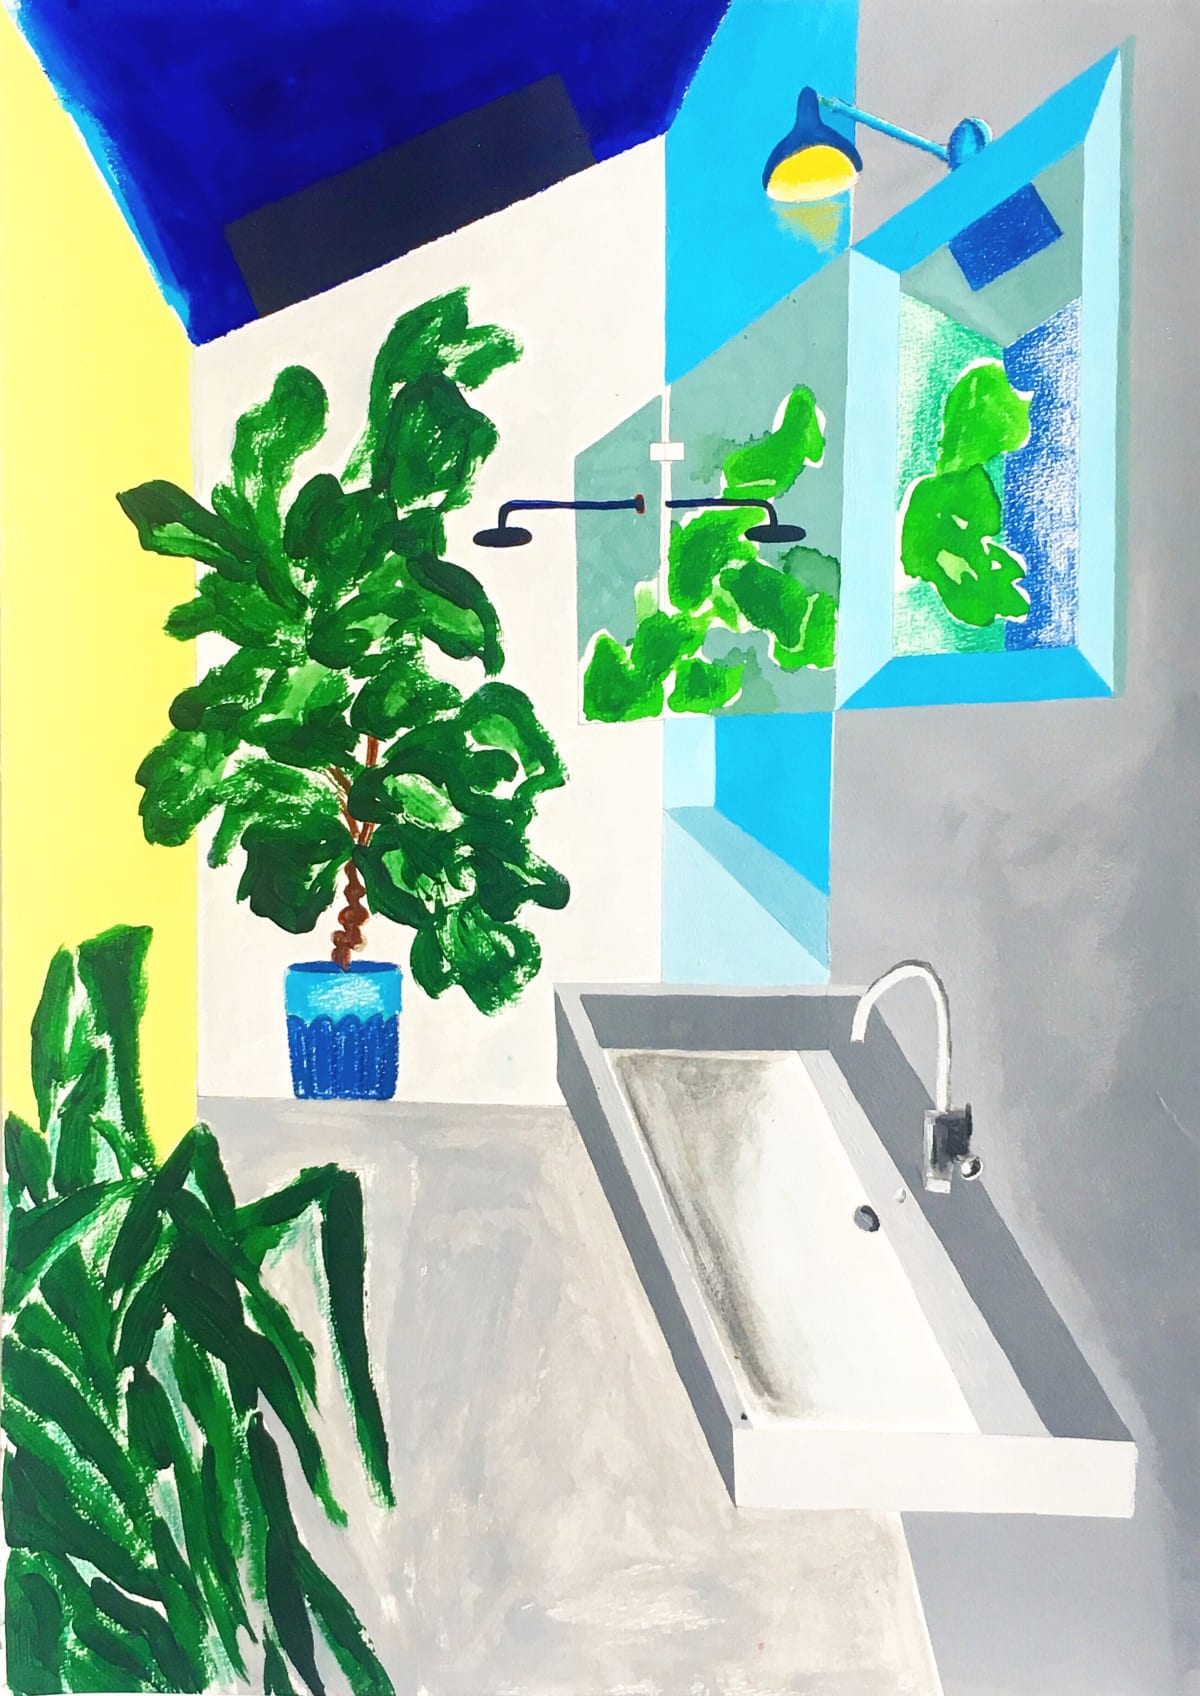 Cathy Tabbakh Modern Sink , 2019 Acrylic and Oil Pastels on Canvas 29 x 42 cm 11 3/8 x 16 1/2 in